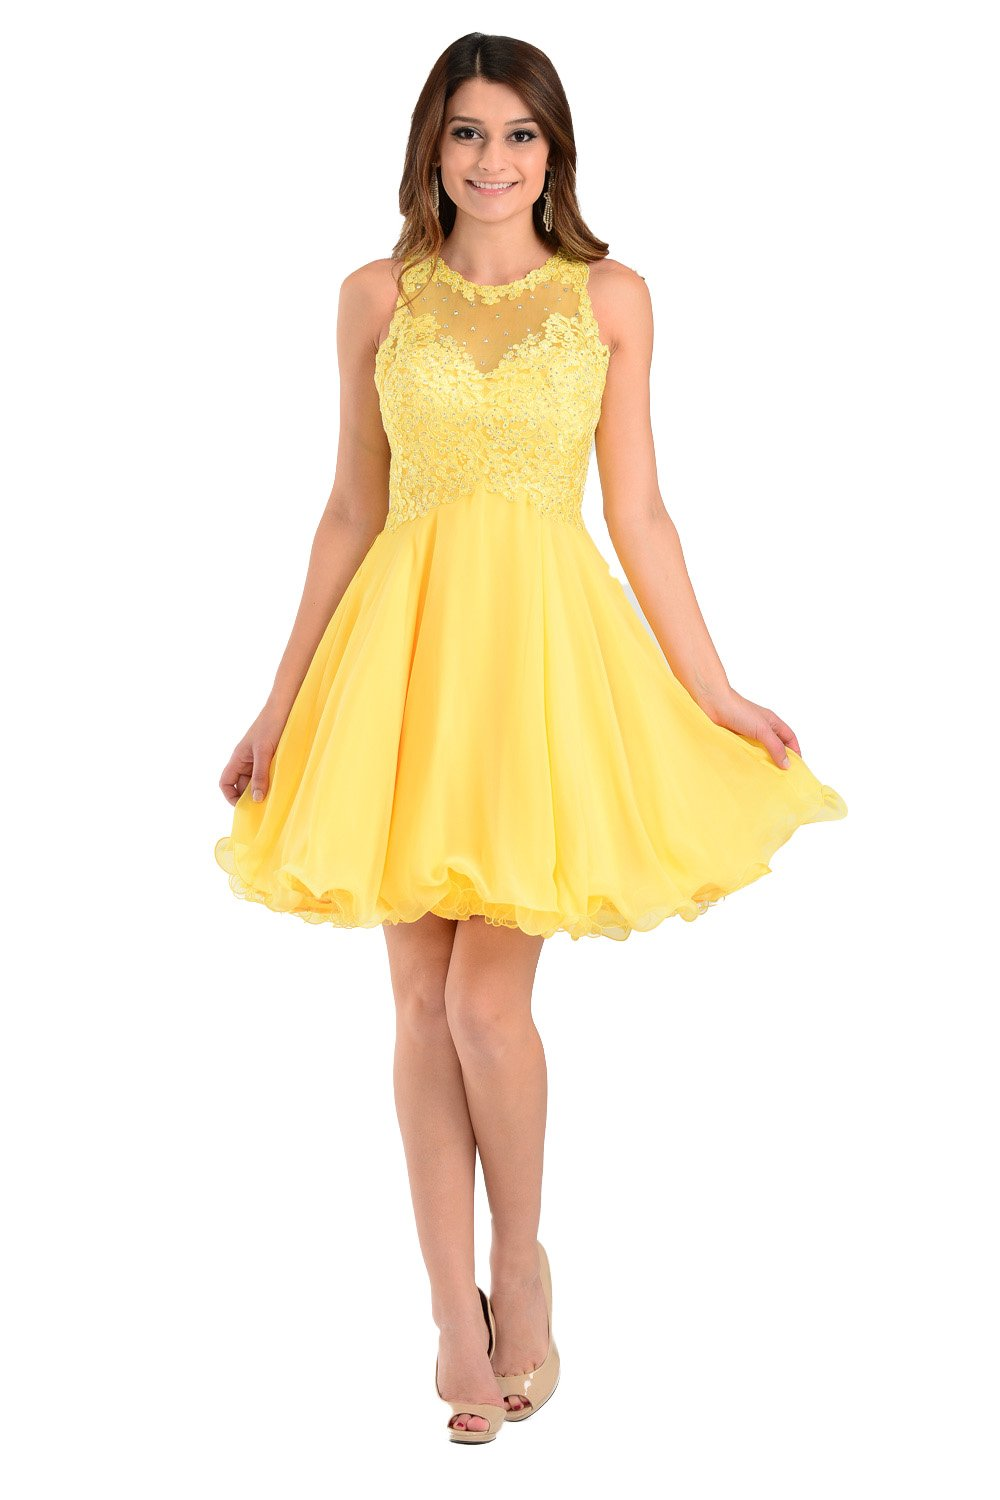 Yellow prom dress 01a215b01f4b